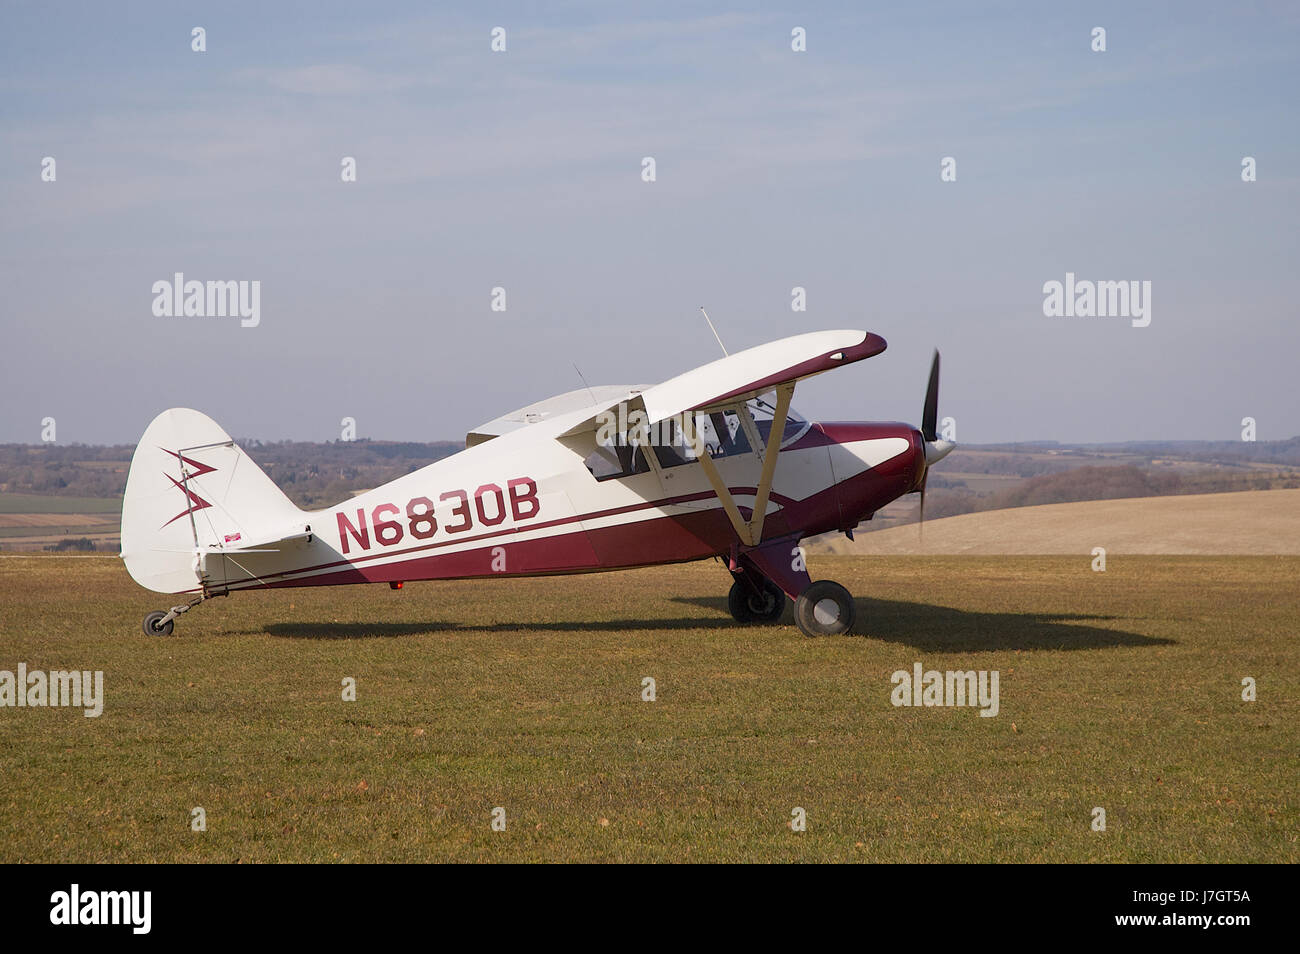 Piper PA-22-150 Pacer Light Aircraft at Compton Abbas Airfield near